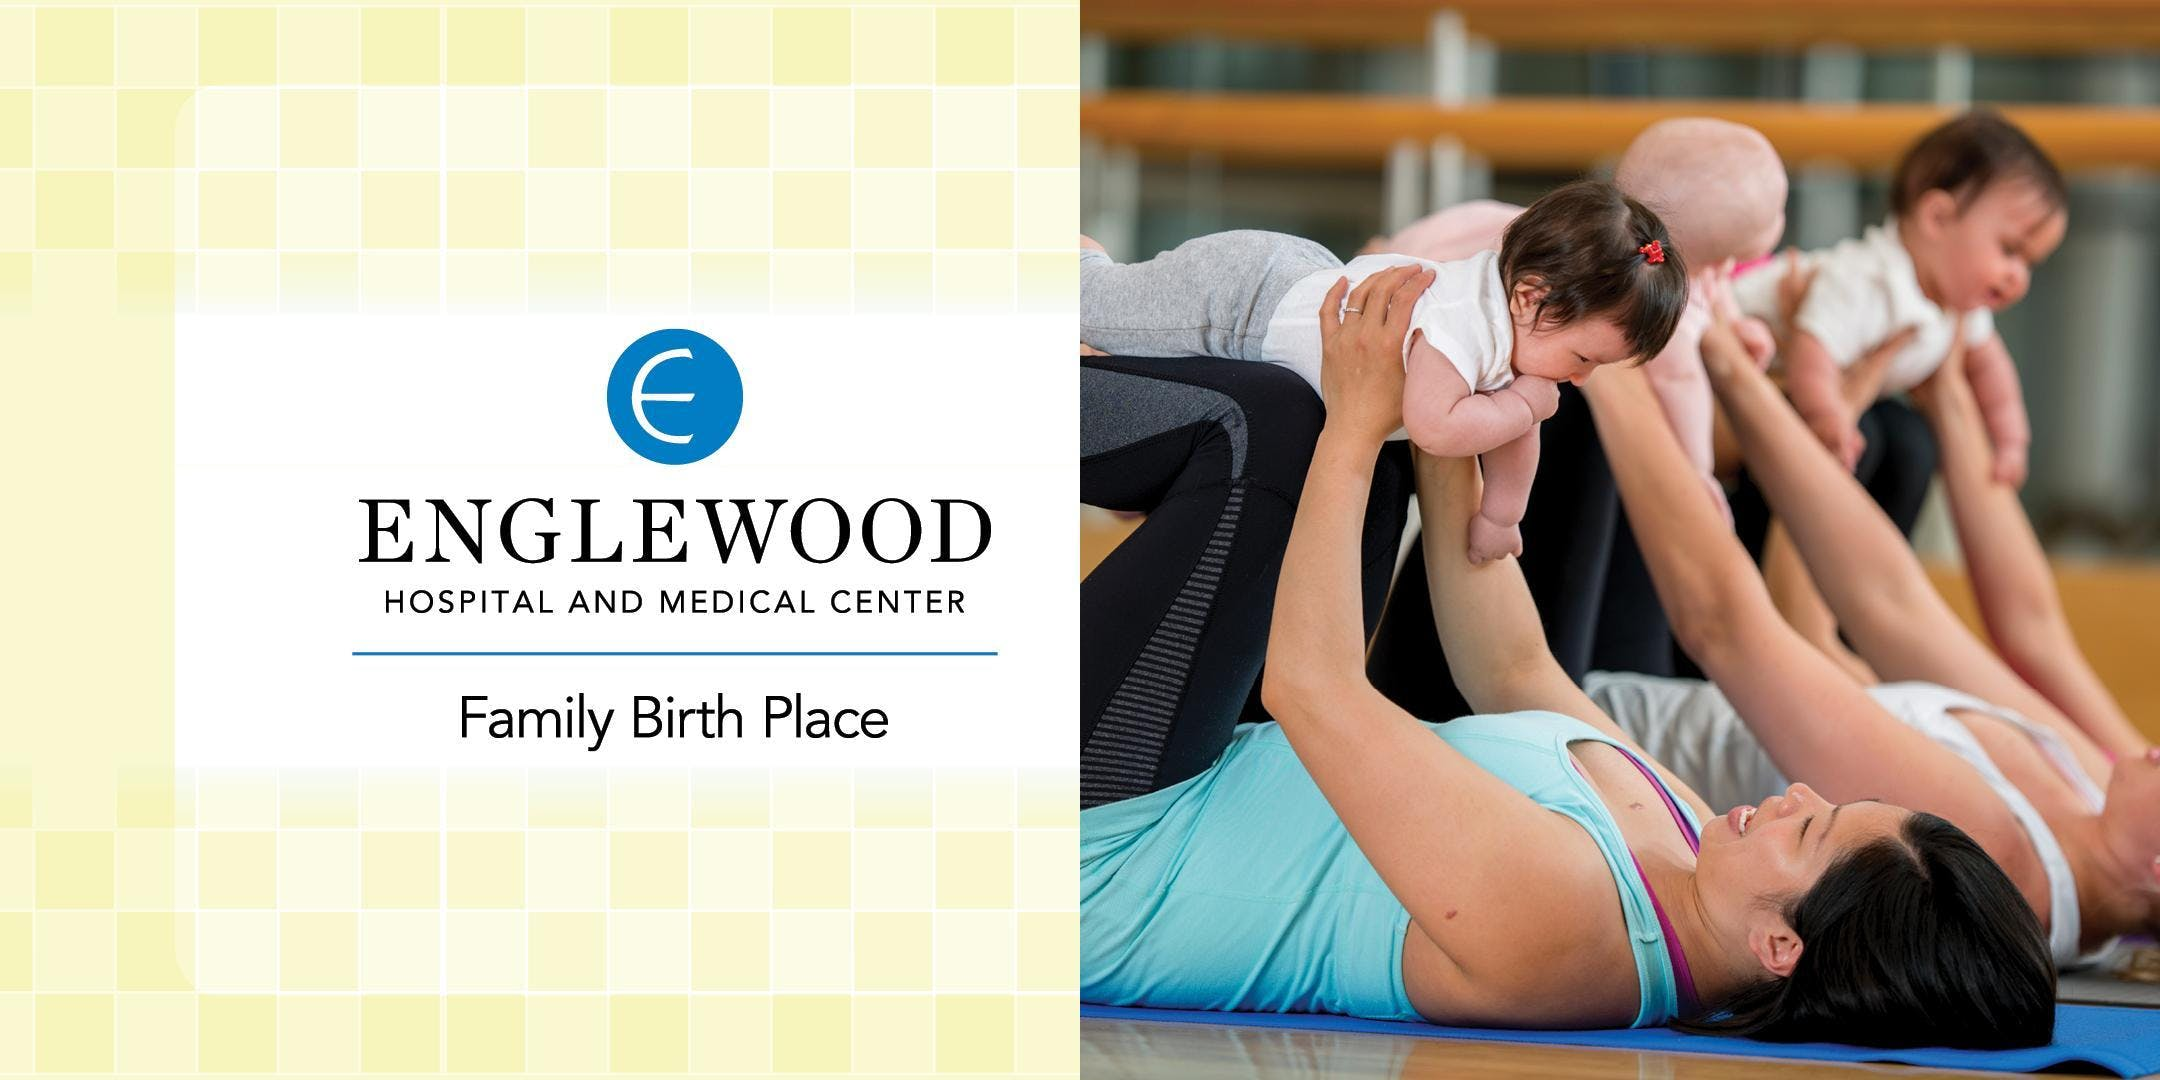 More info: Mommy and Me Postnatal Yoga Series (NOV 1-DEC 13)